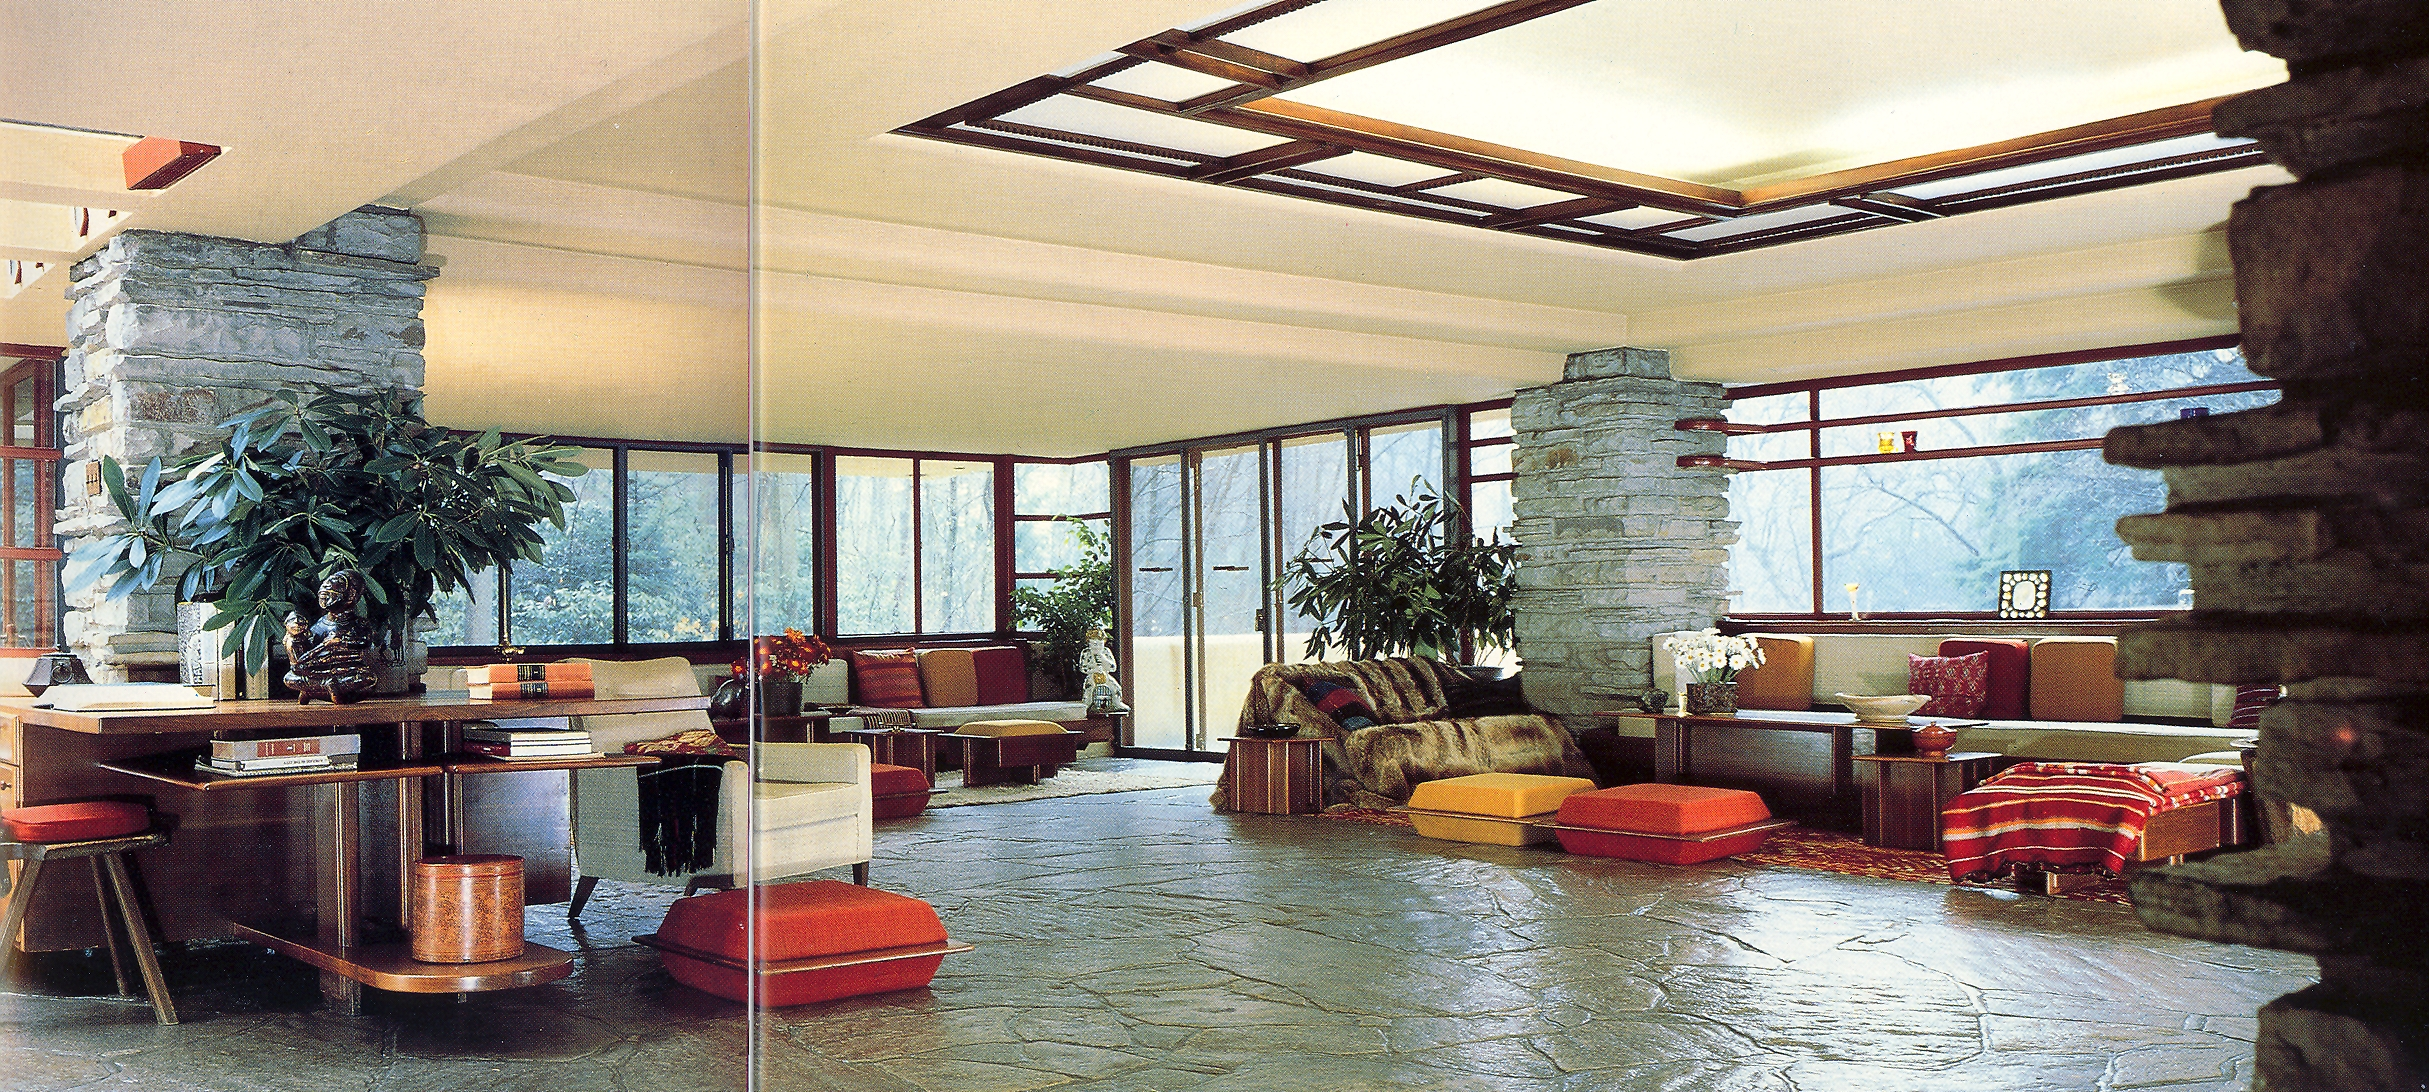 Falling Water House Interior The Image